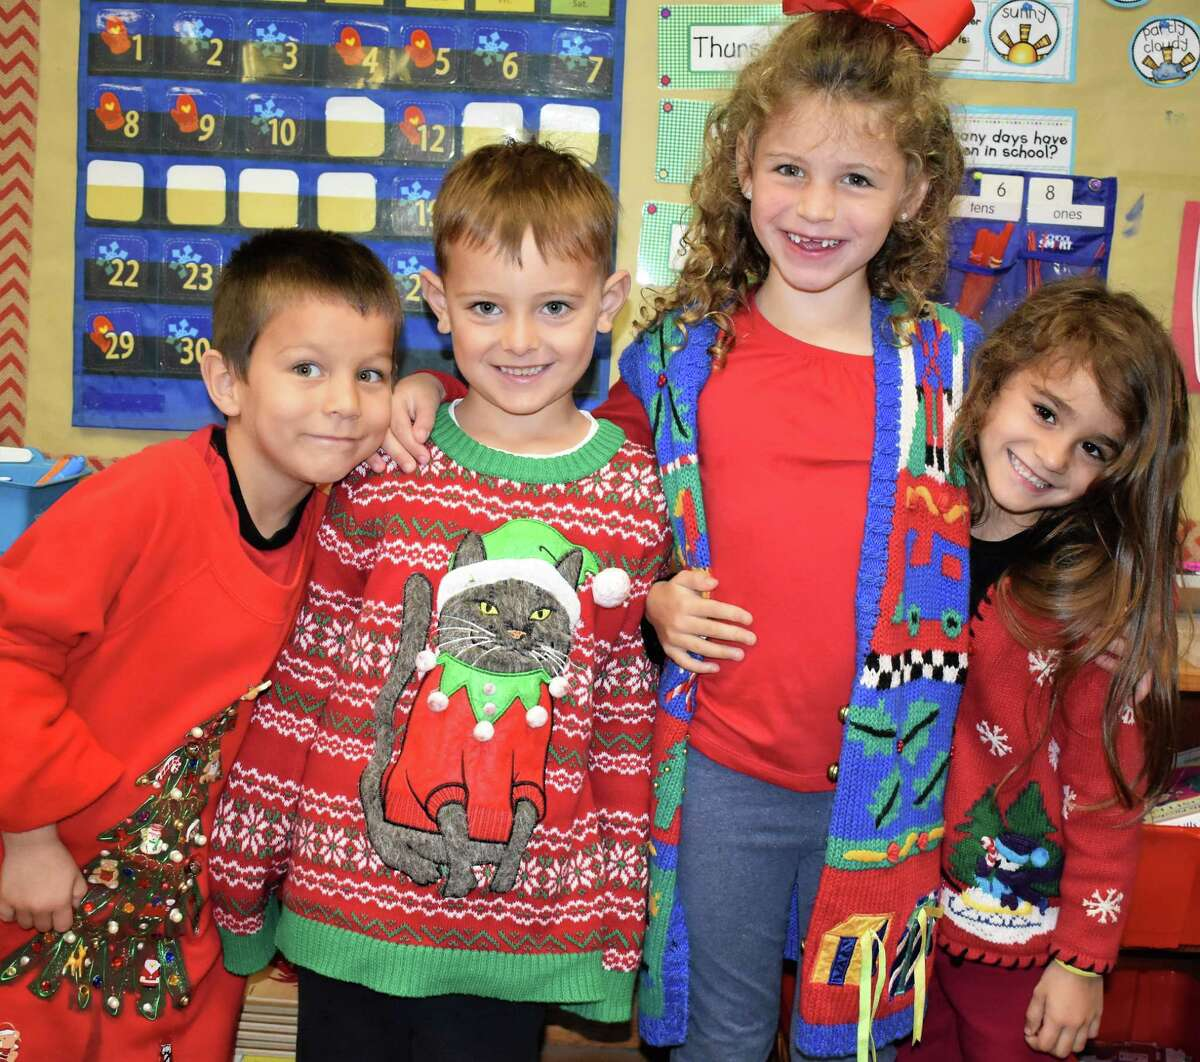 Students at Needville Elementary celebrated Ugly Sweater Day by wearing some of their favorite Christmas sweaters. Joining in the fun are, from left, kindergartners Cooper Huerta, Trek Miller, Morgan Soape and Chloe Williams.